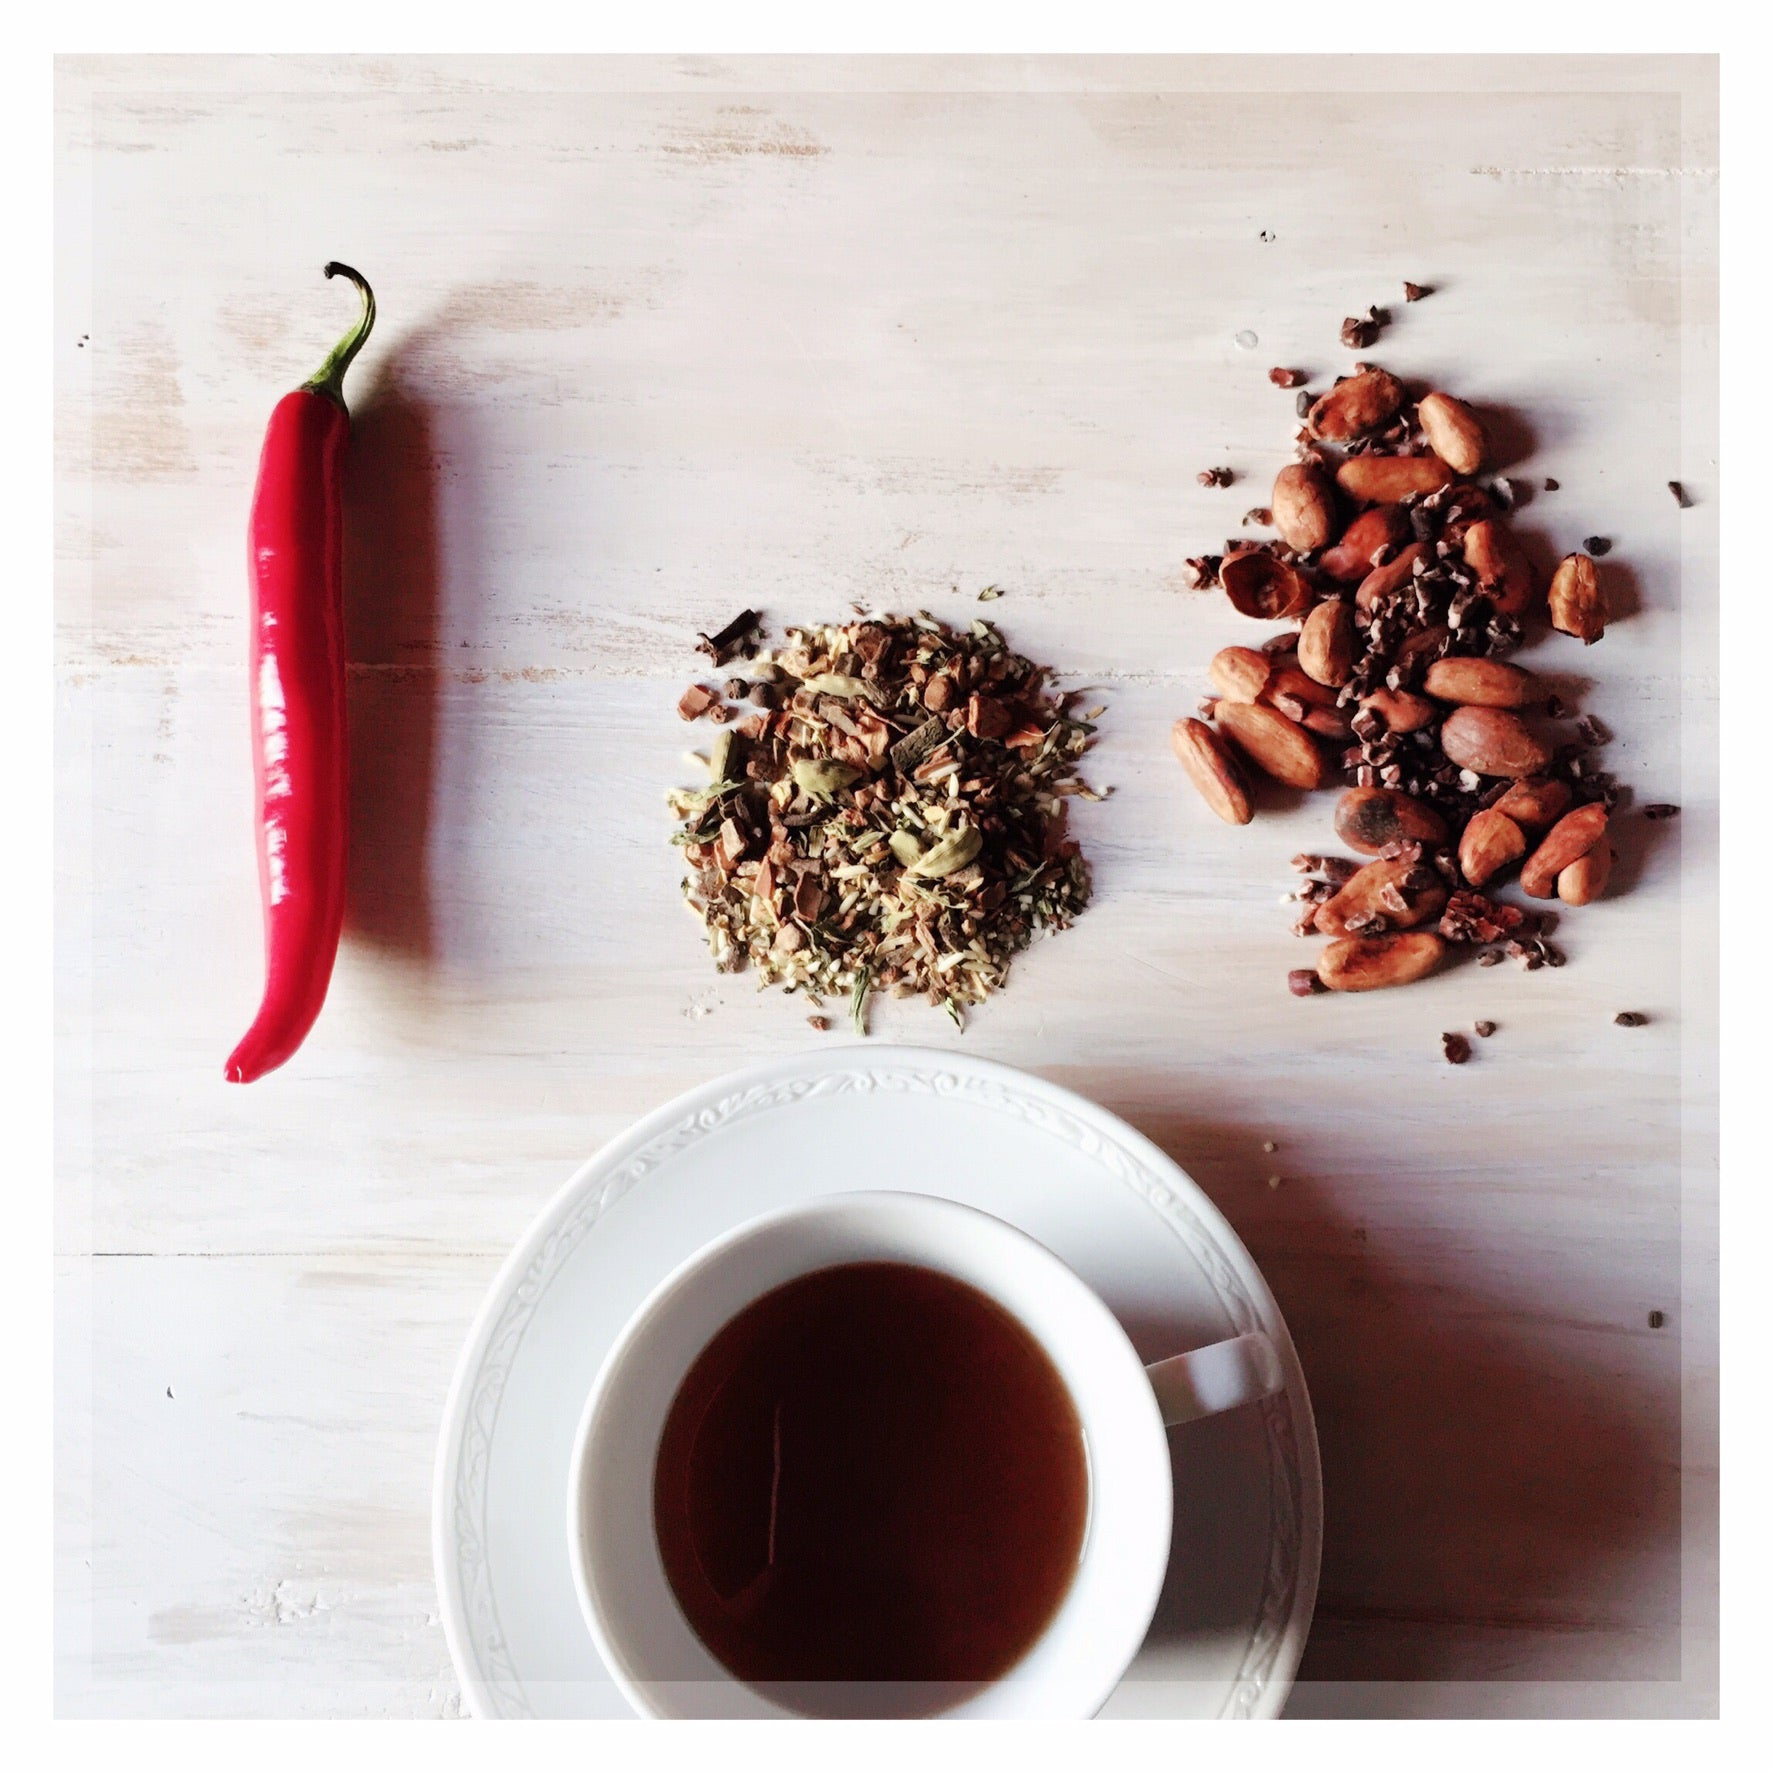 Spiced Tea No.4 - Incan Chocolate 50g BACK MAY 2020 [Cacao Nibs , Sweet Spices & Chilli] - Taste Kaleidoscope